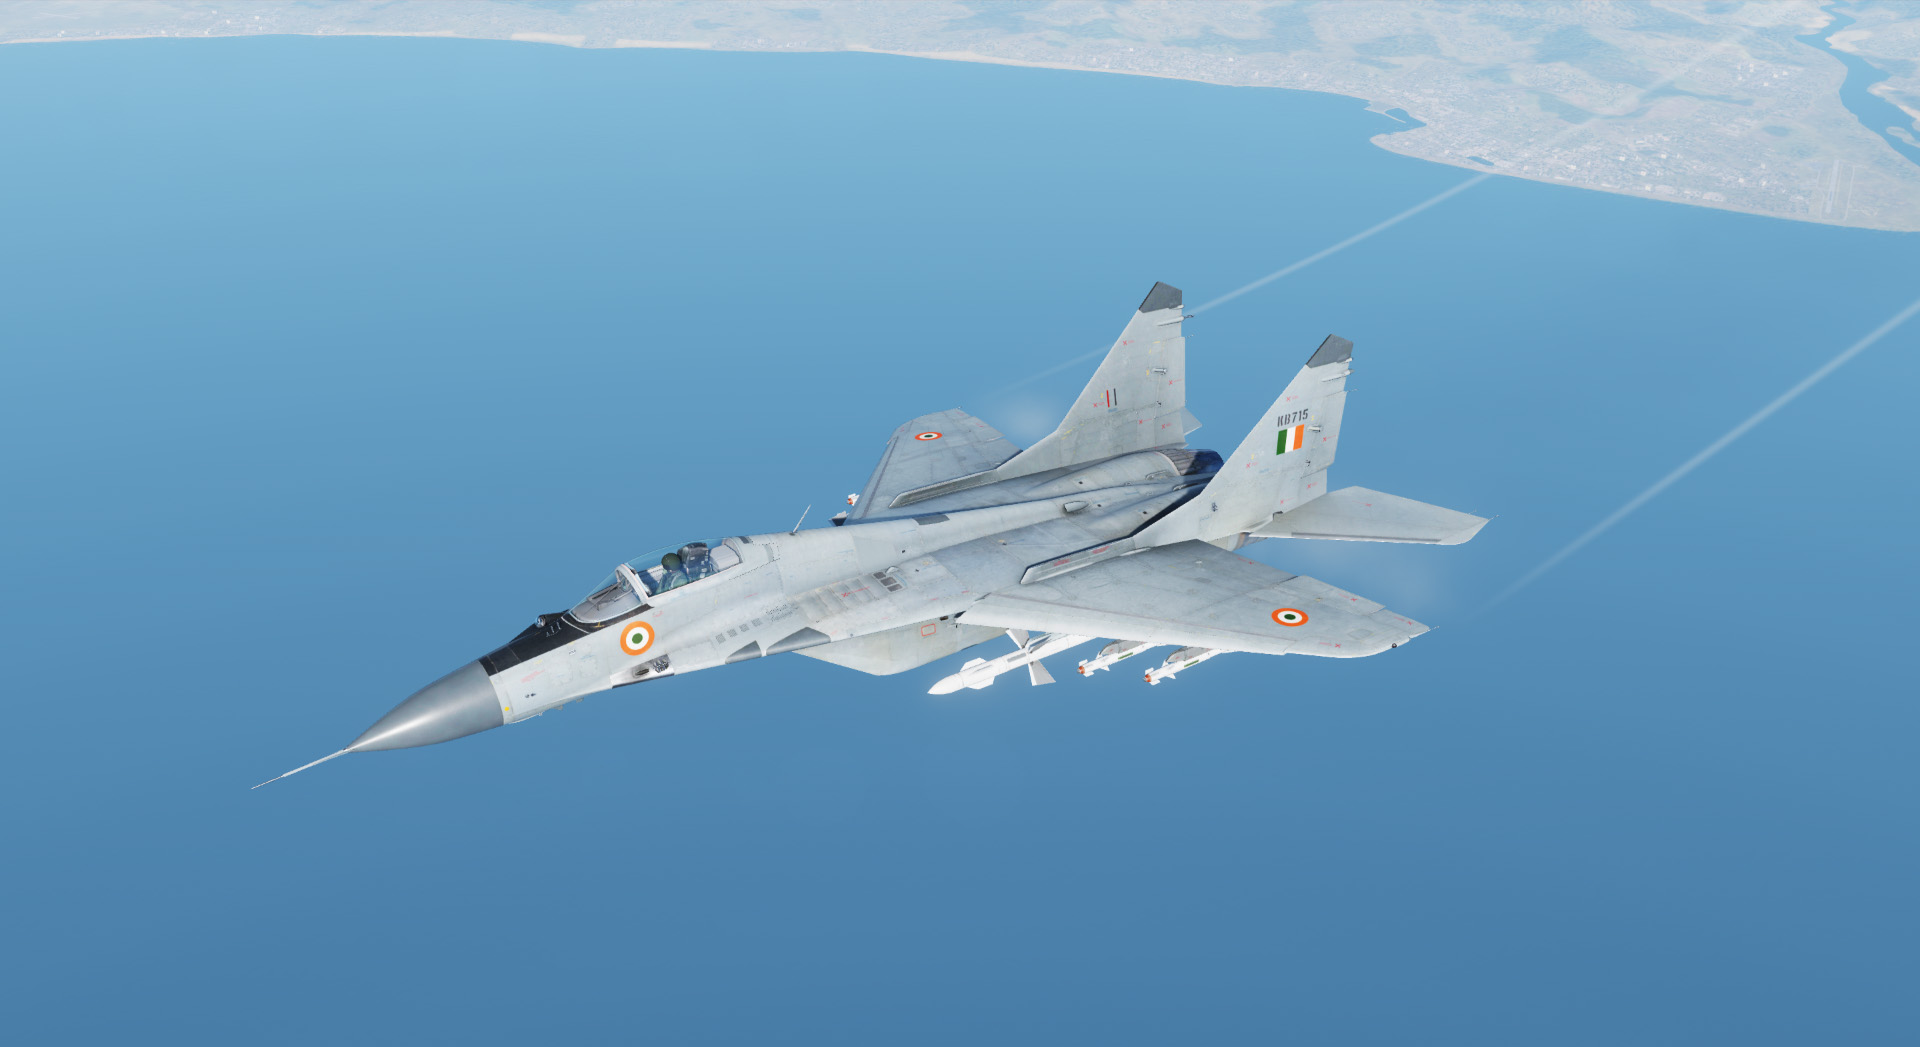 MiG-29a Basic Gray Skin for Indian Air Force